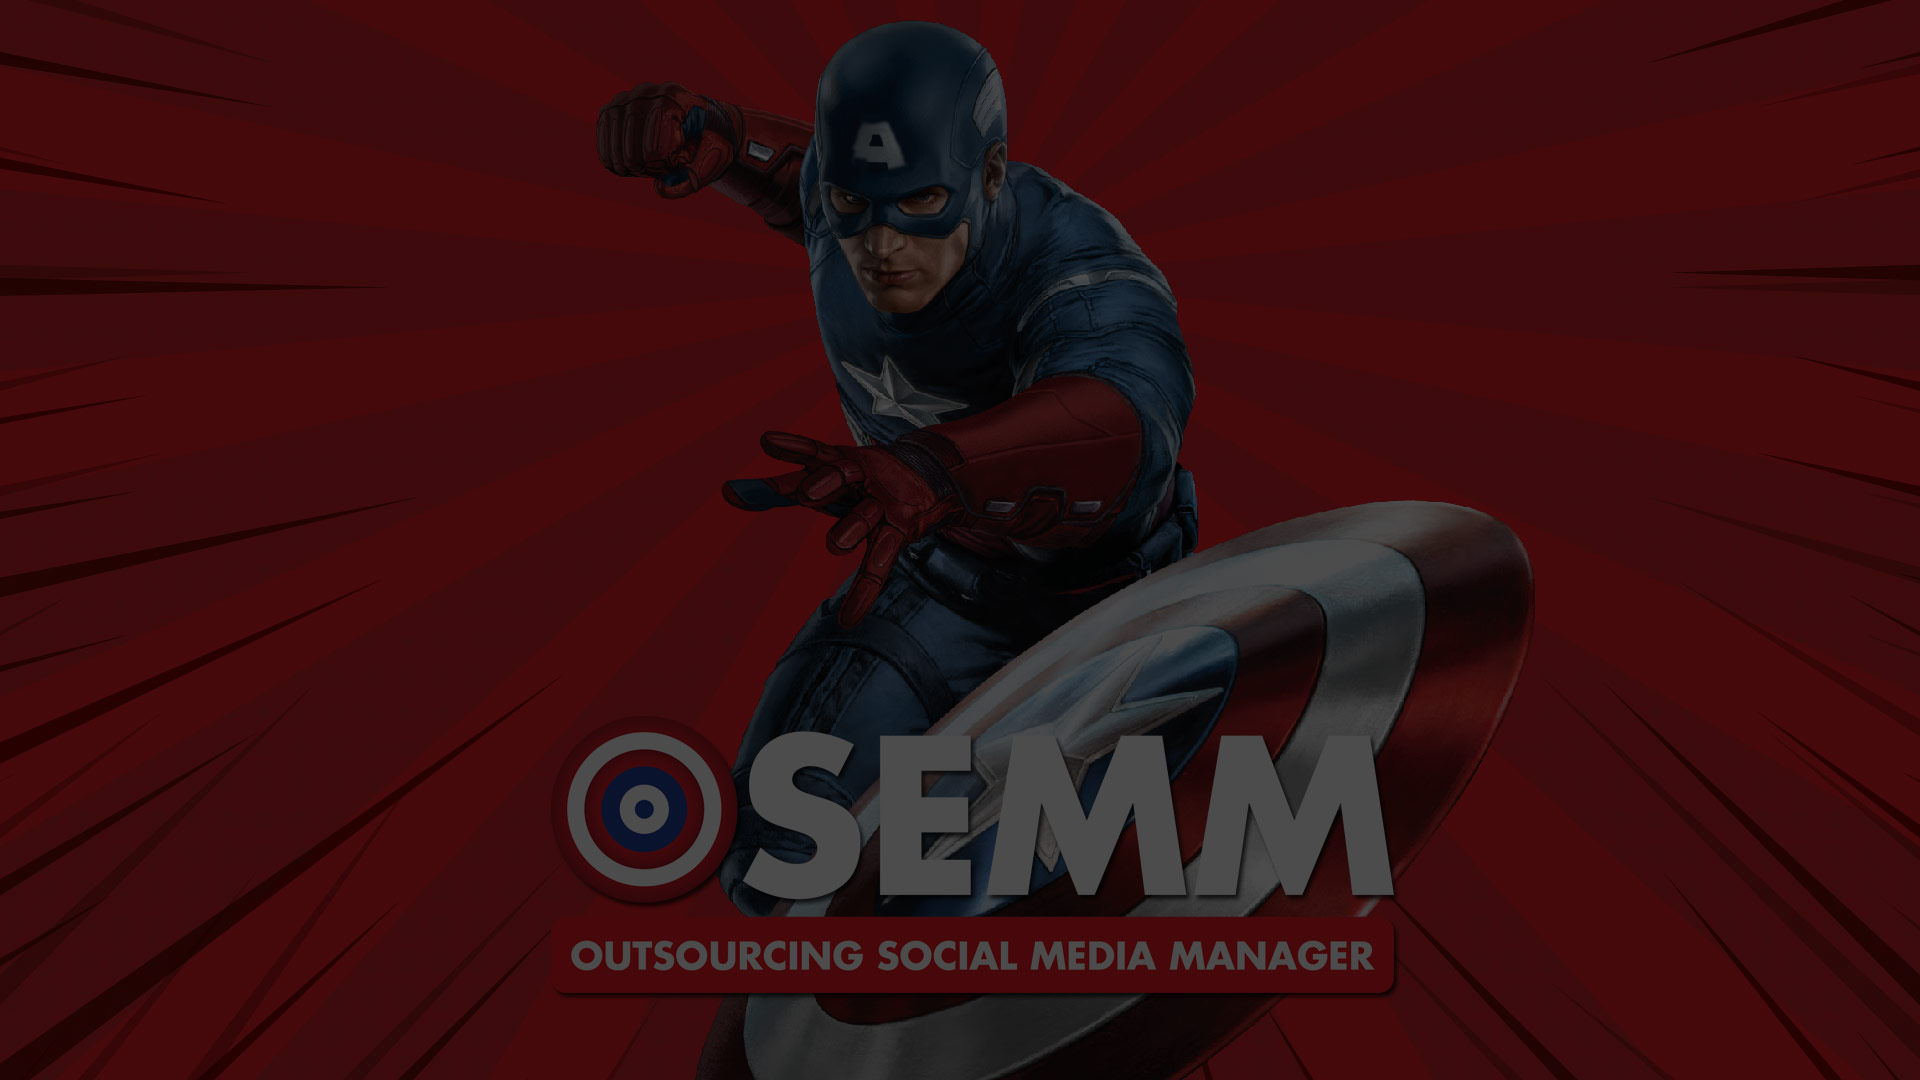 IAMK Outsourcing Social Media Manager